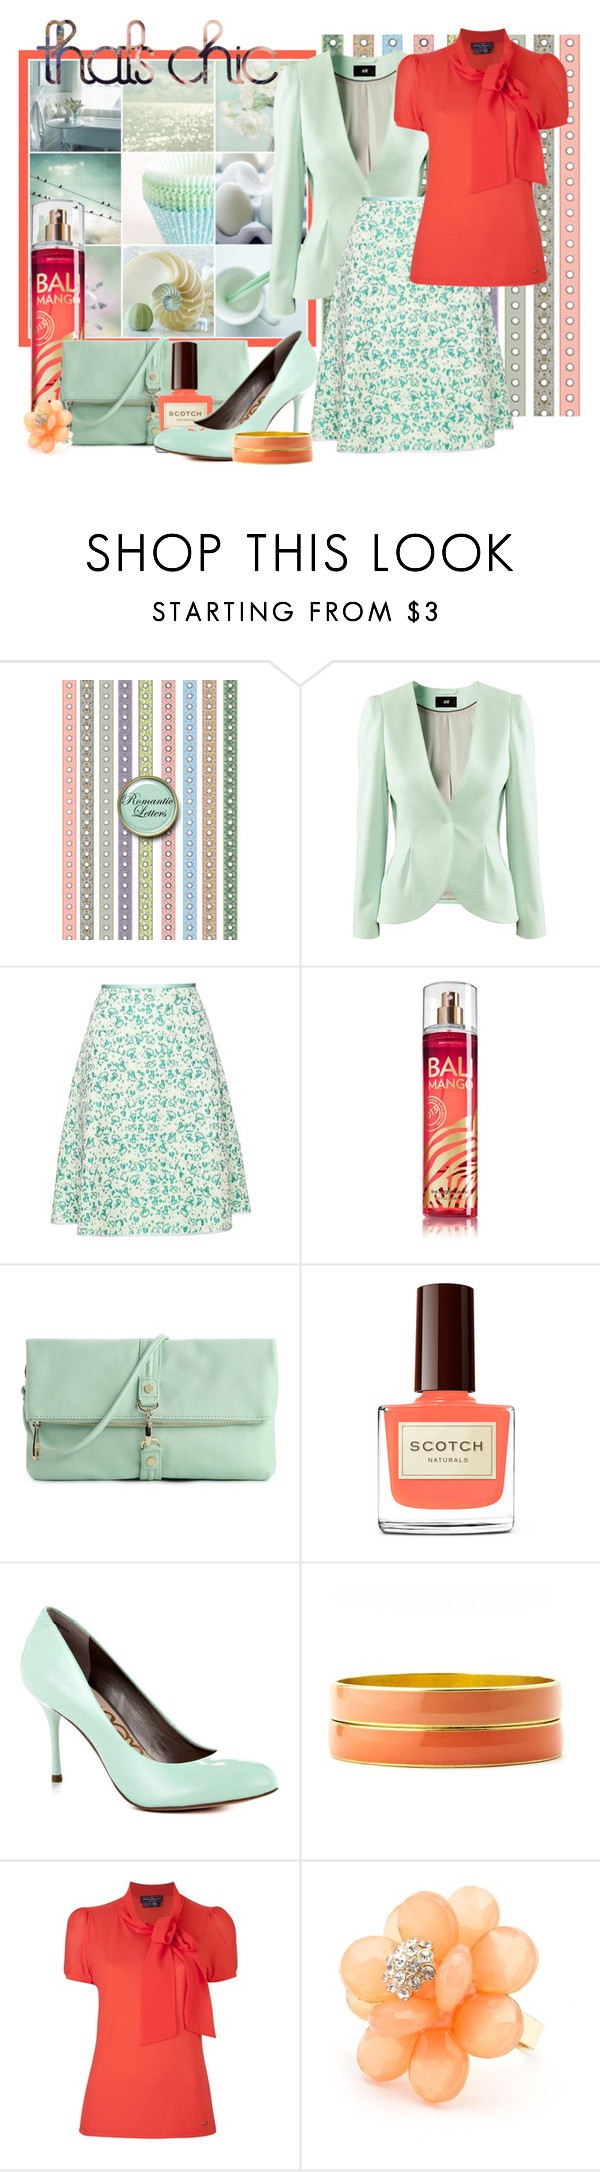 """Dare to be chic"" by heather-peace ❤ liked on Polyvore featuring Shabby Chic, H&M, Giles, Steve Madden, Sam Edelman, Charlotte Russe and Salvatore Ferragamo"